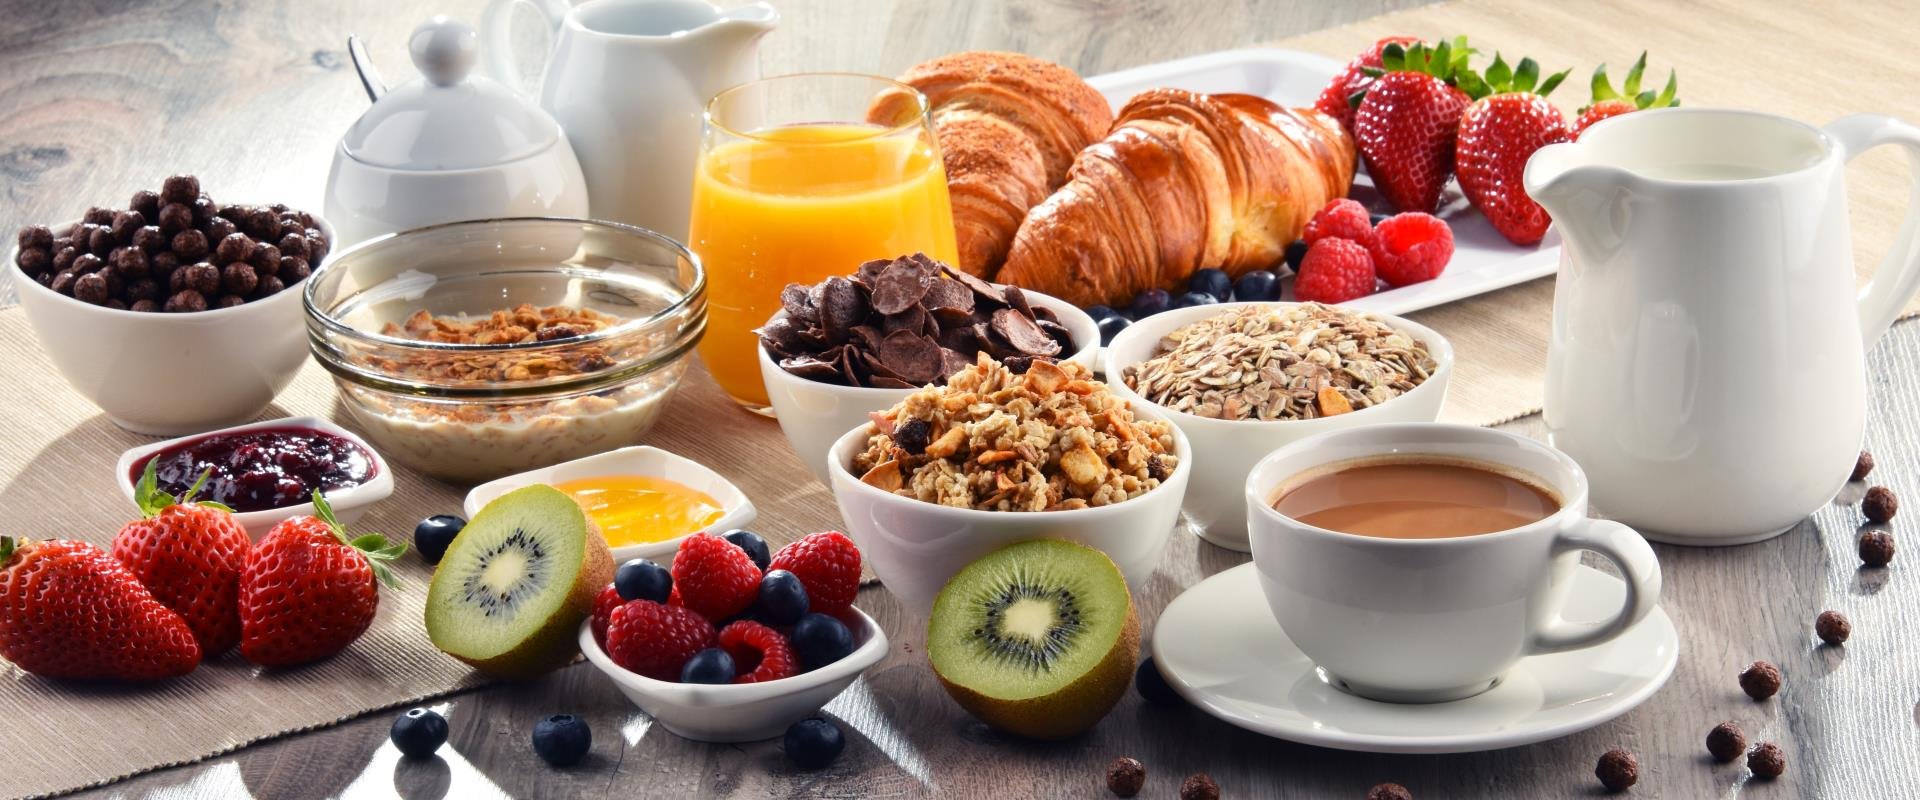 Free breakfast BWR members Platinum, Diamond and Diamond Select